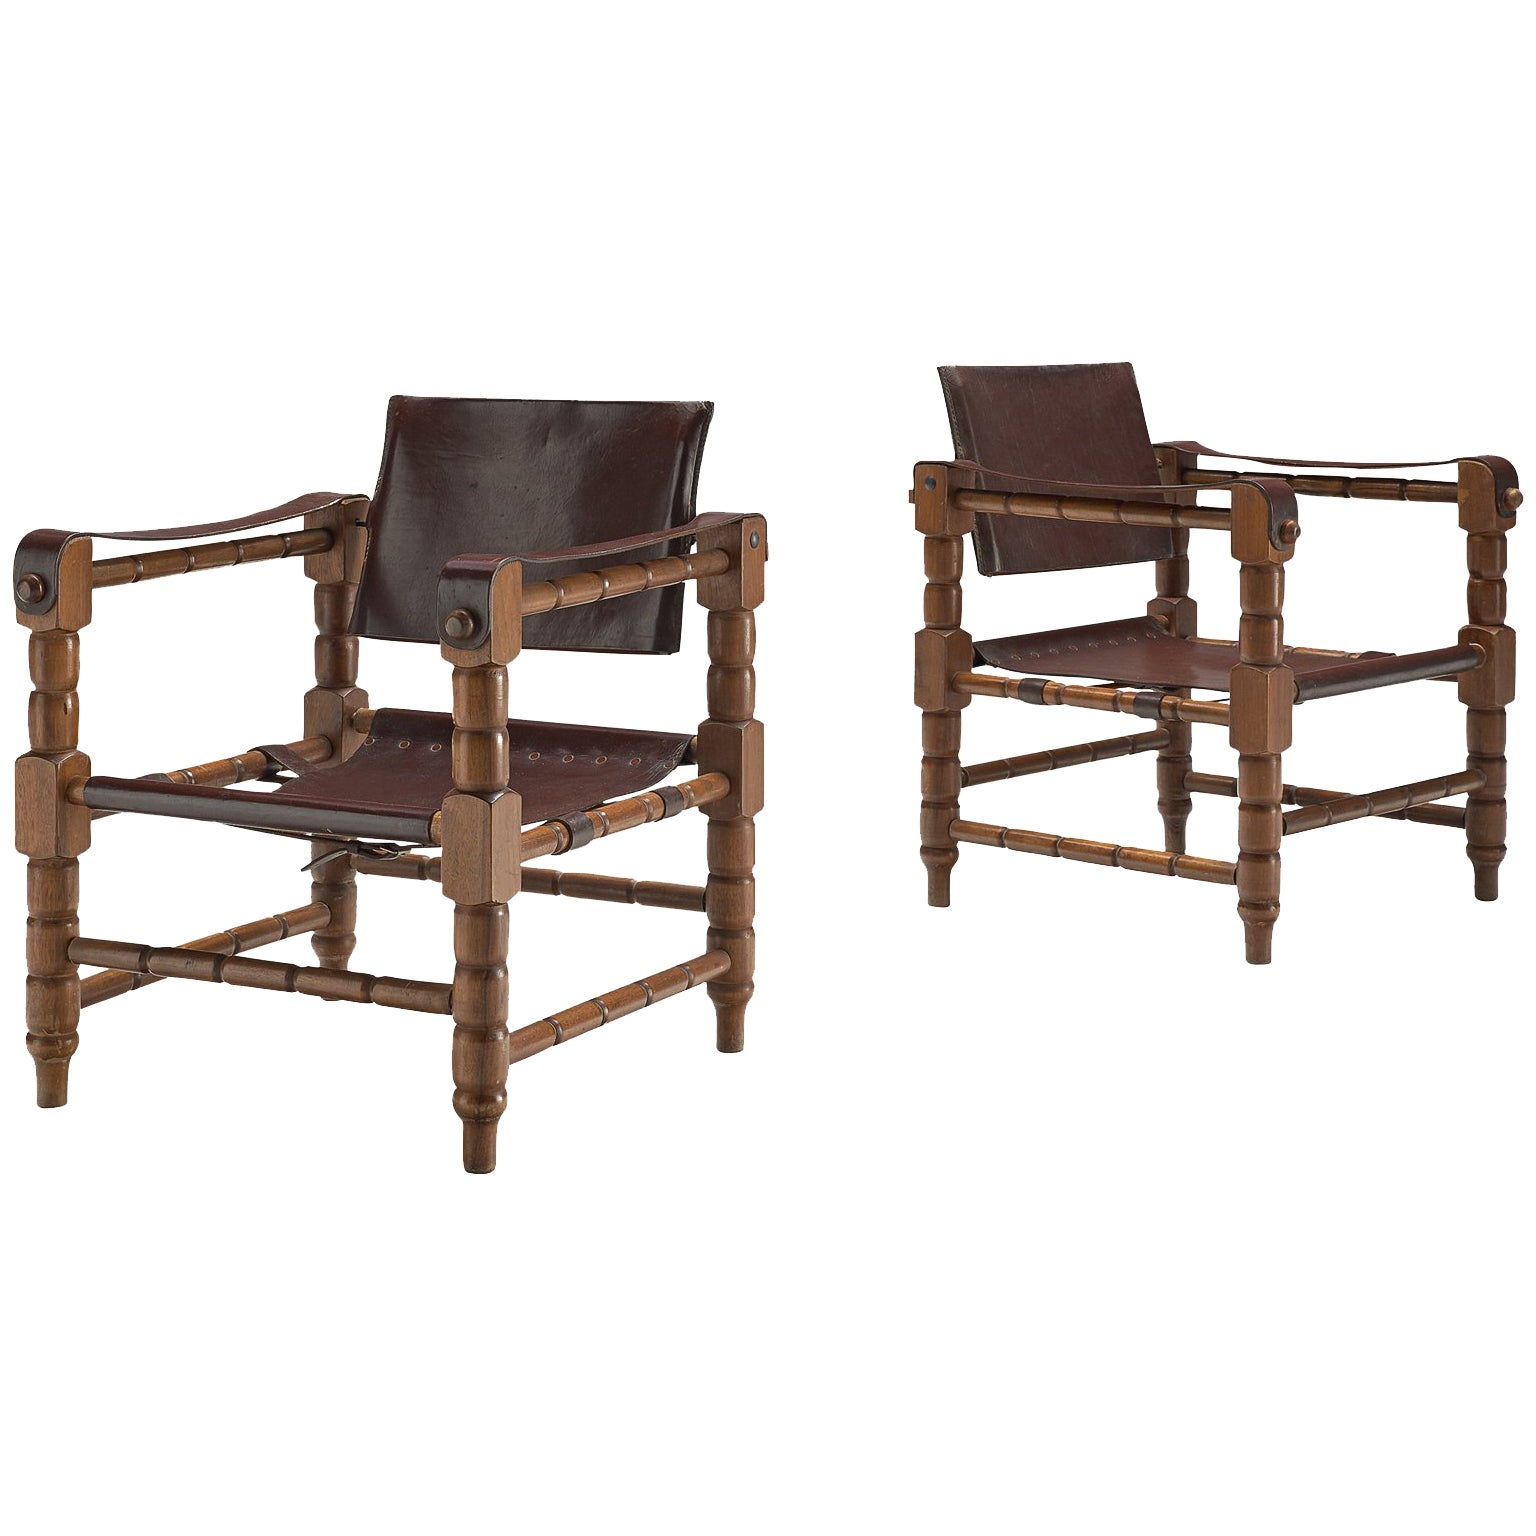 Pair of Safari Chairs with Sculptural Wooden Frames